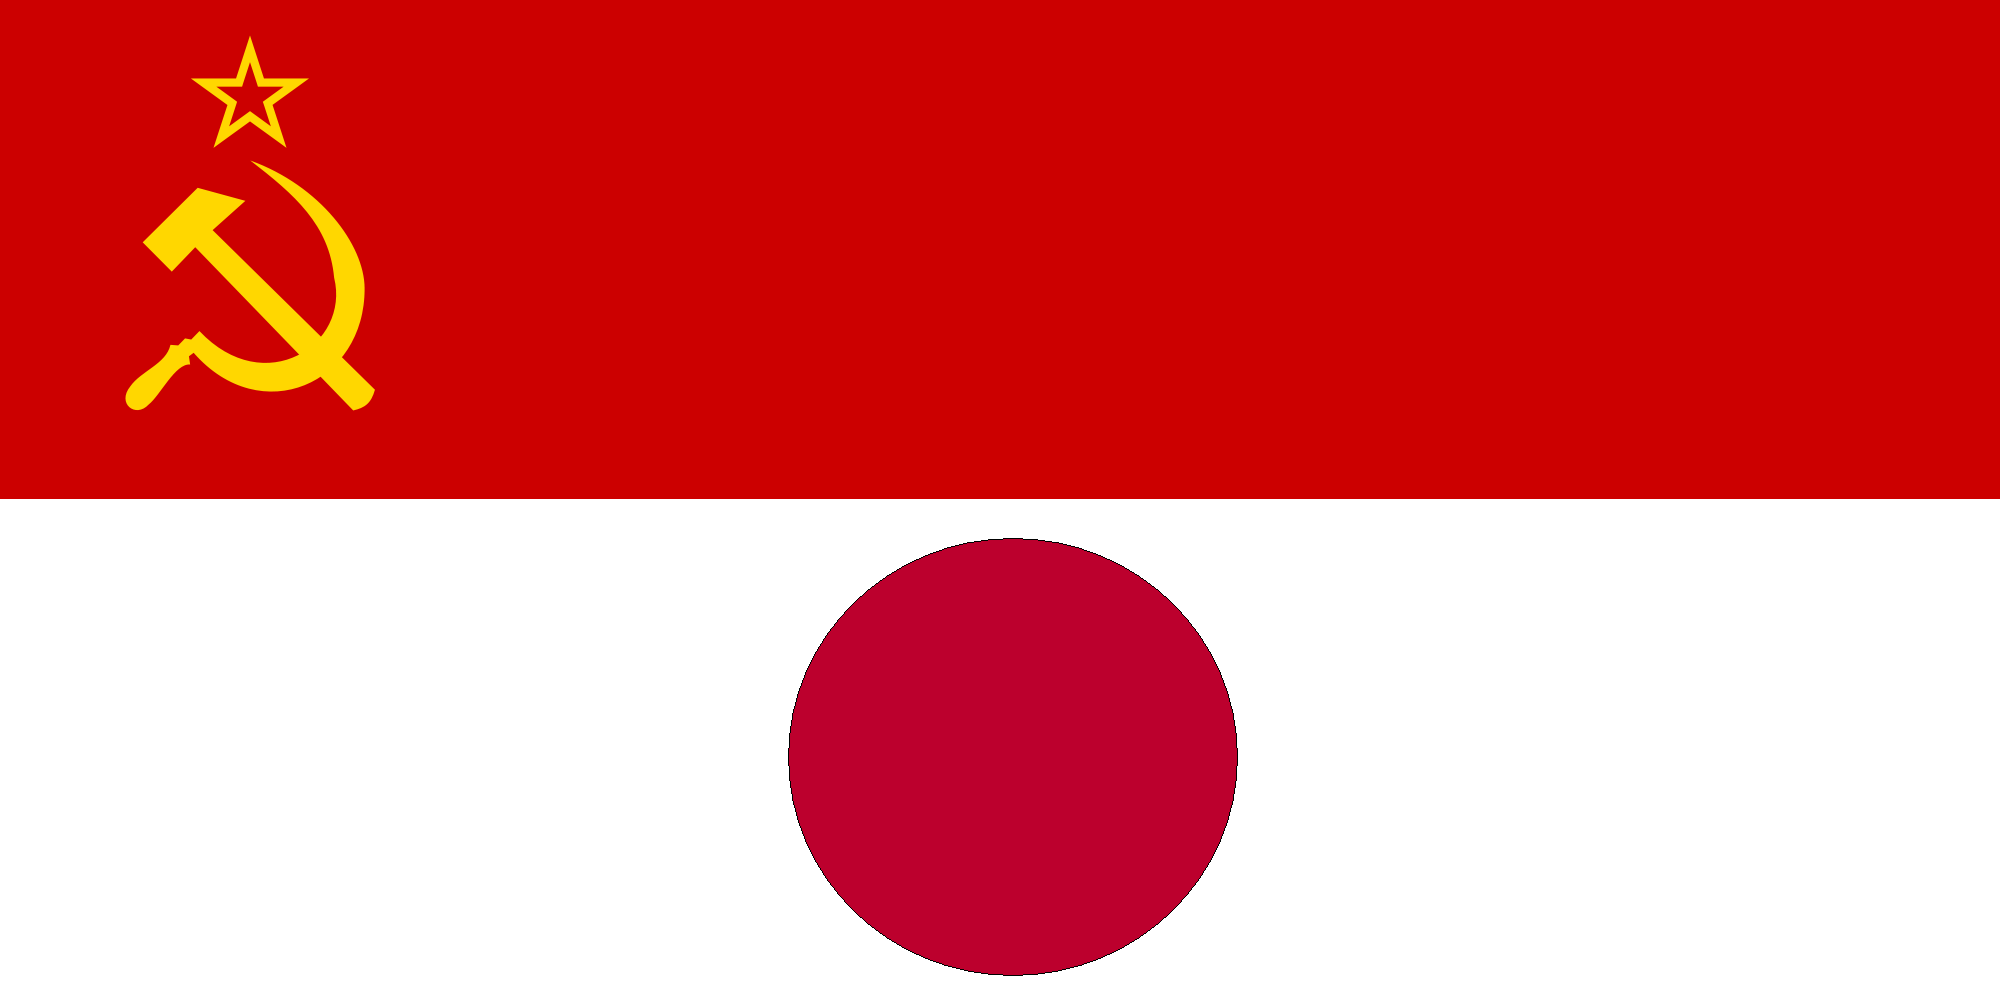 flag of japanese soviet protectorate government by zeppelin4ever